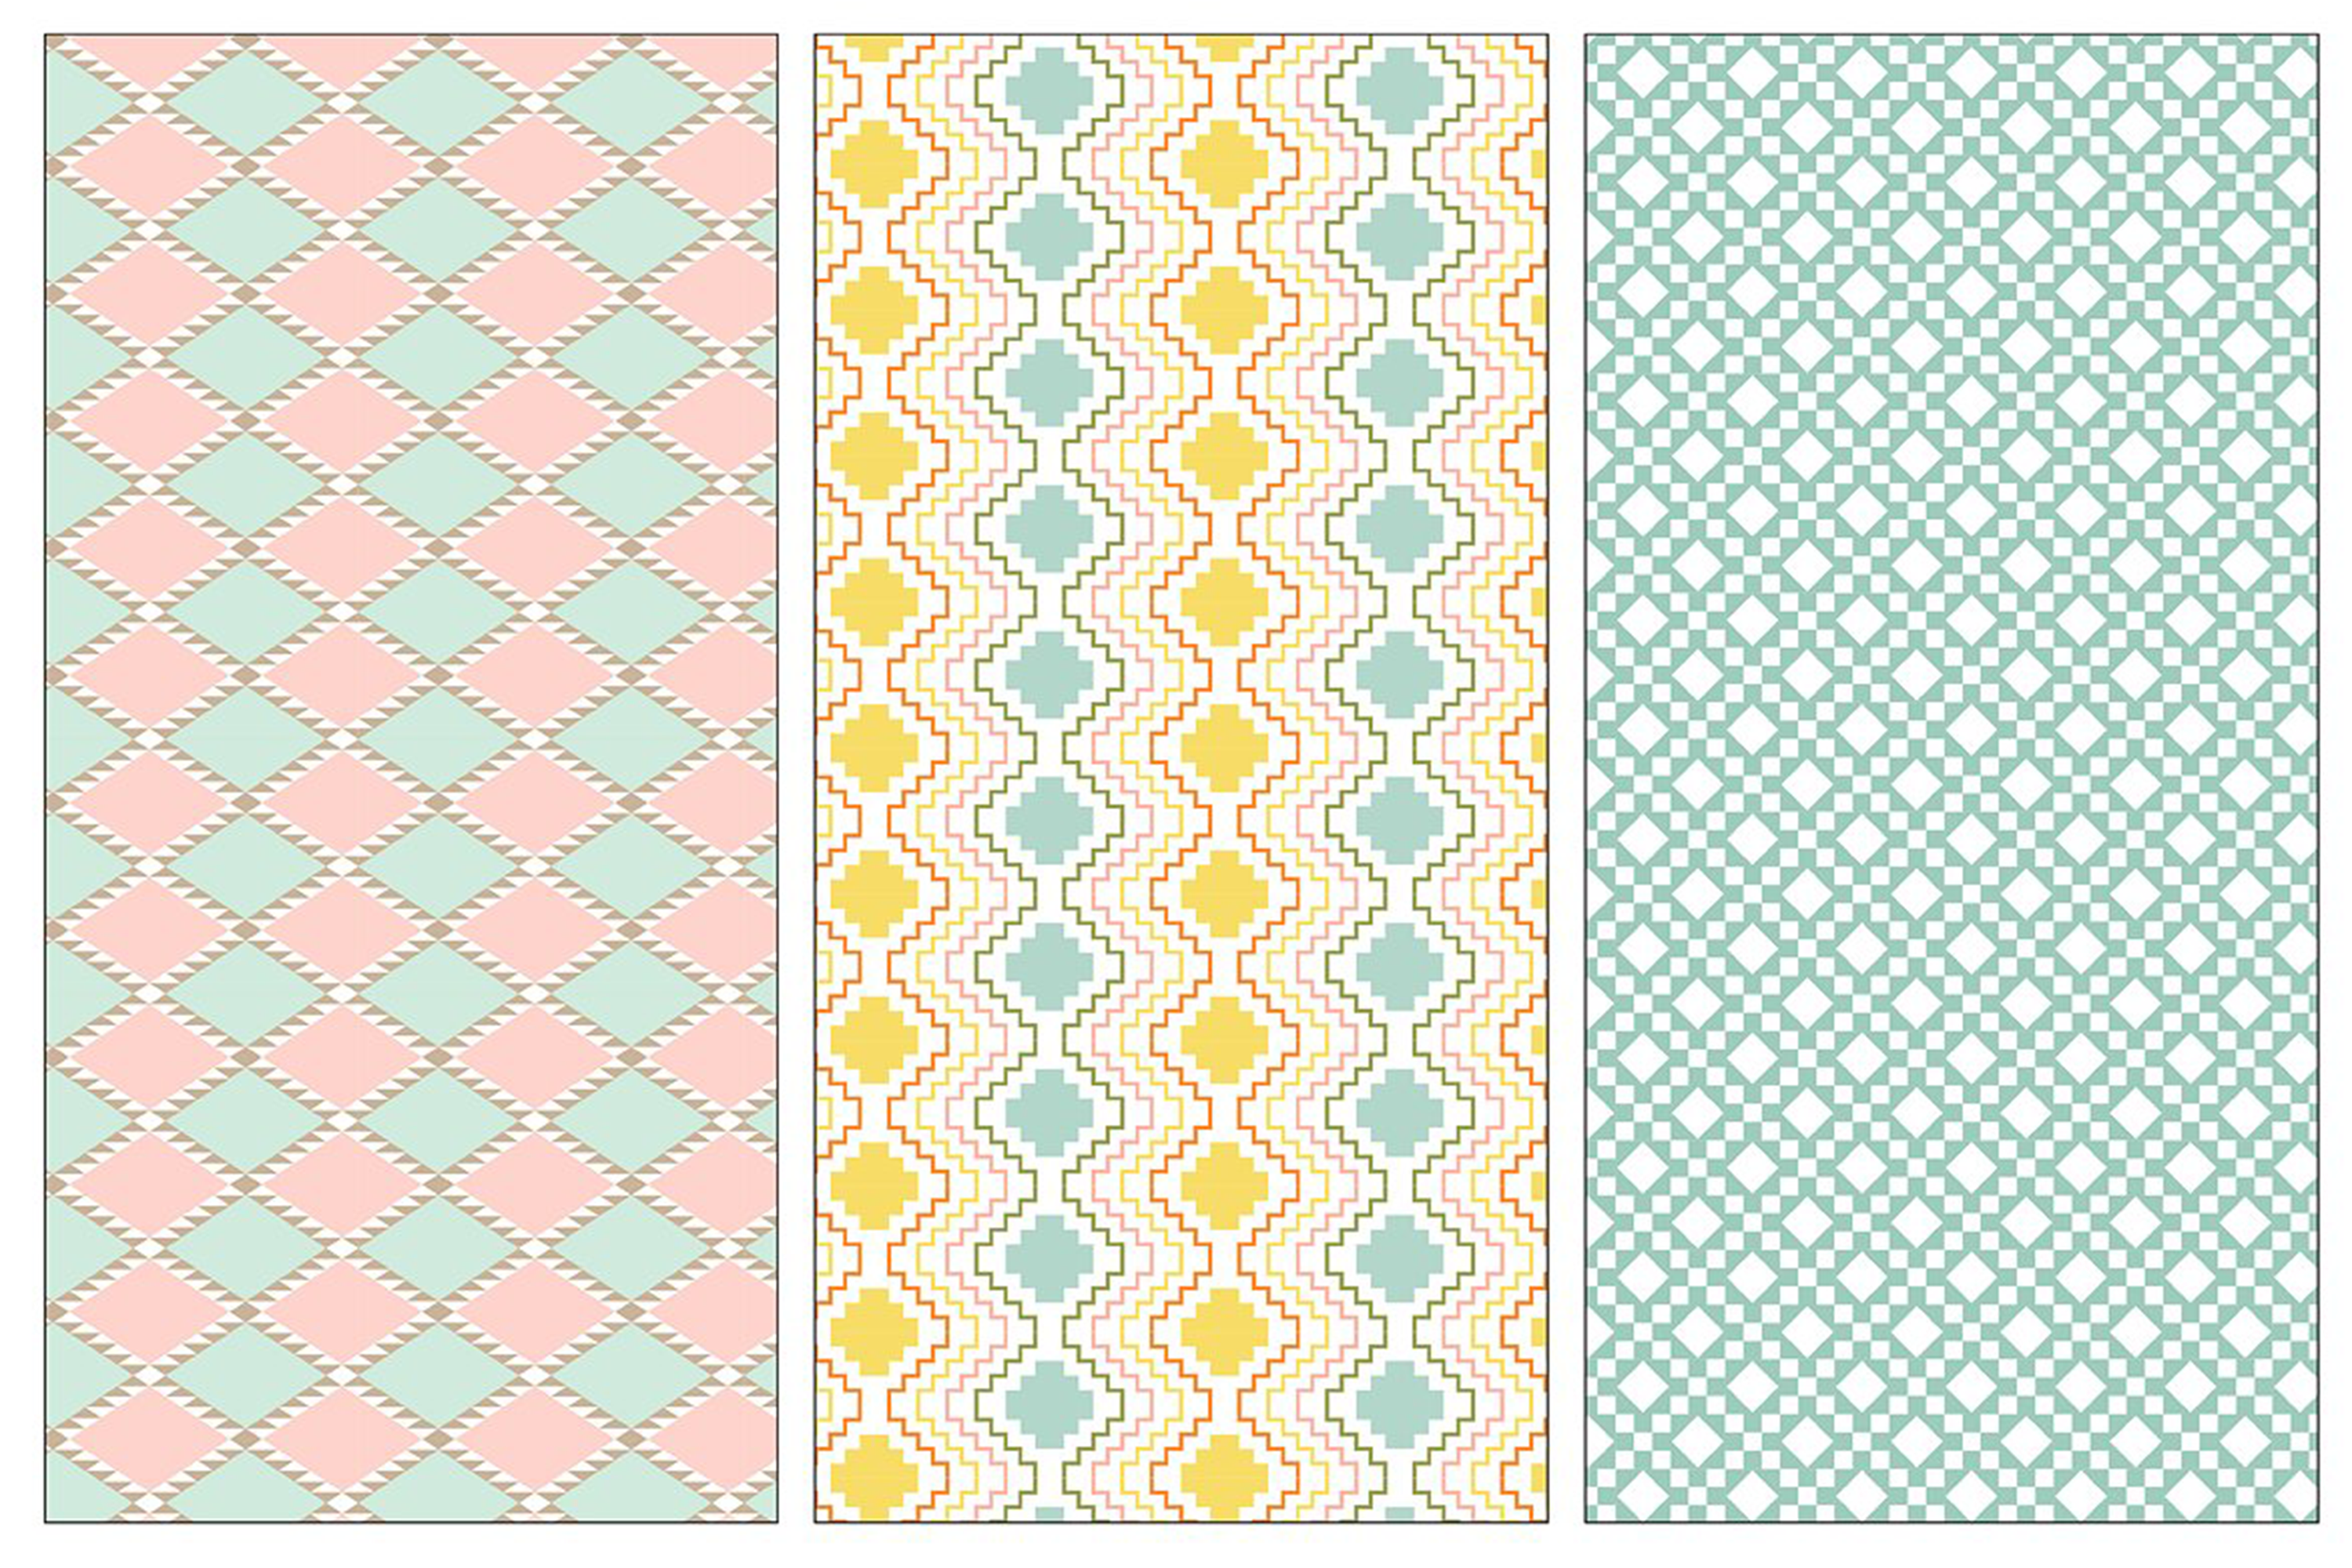 Seamless Pastel Native American Patterns example image 7